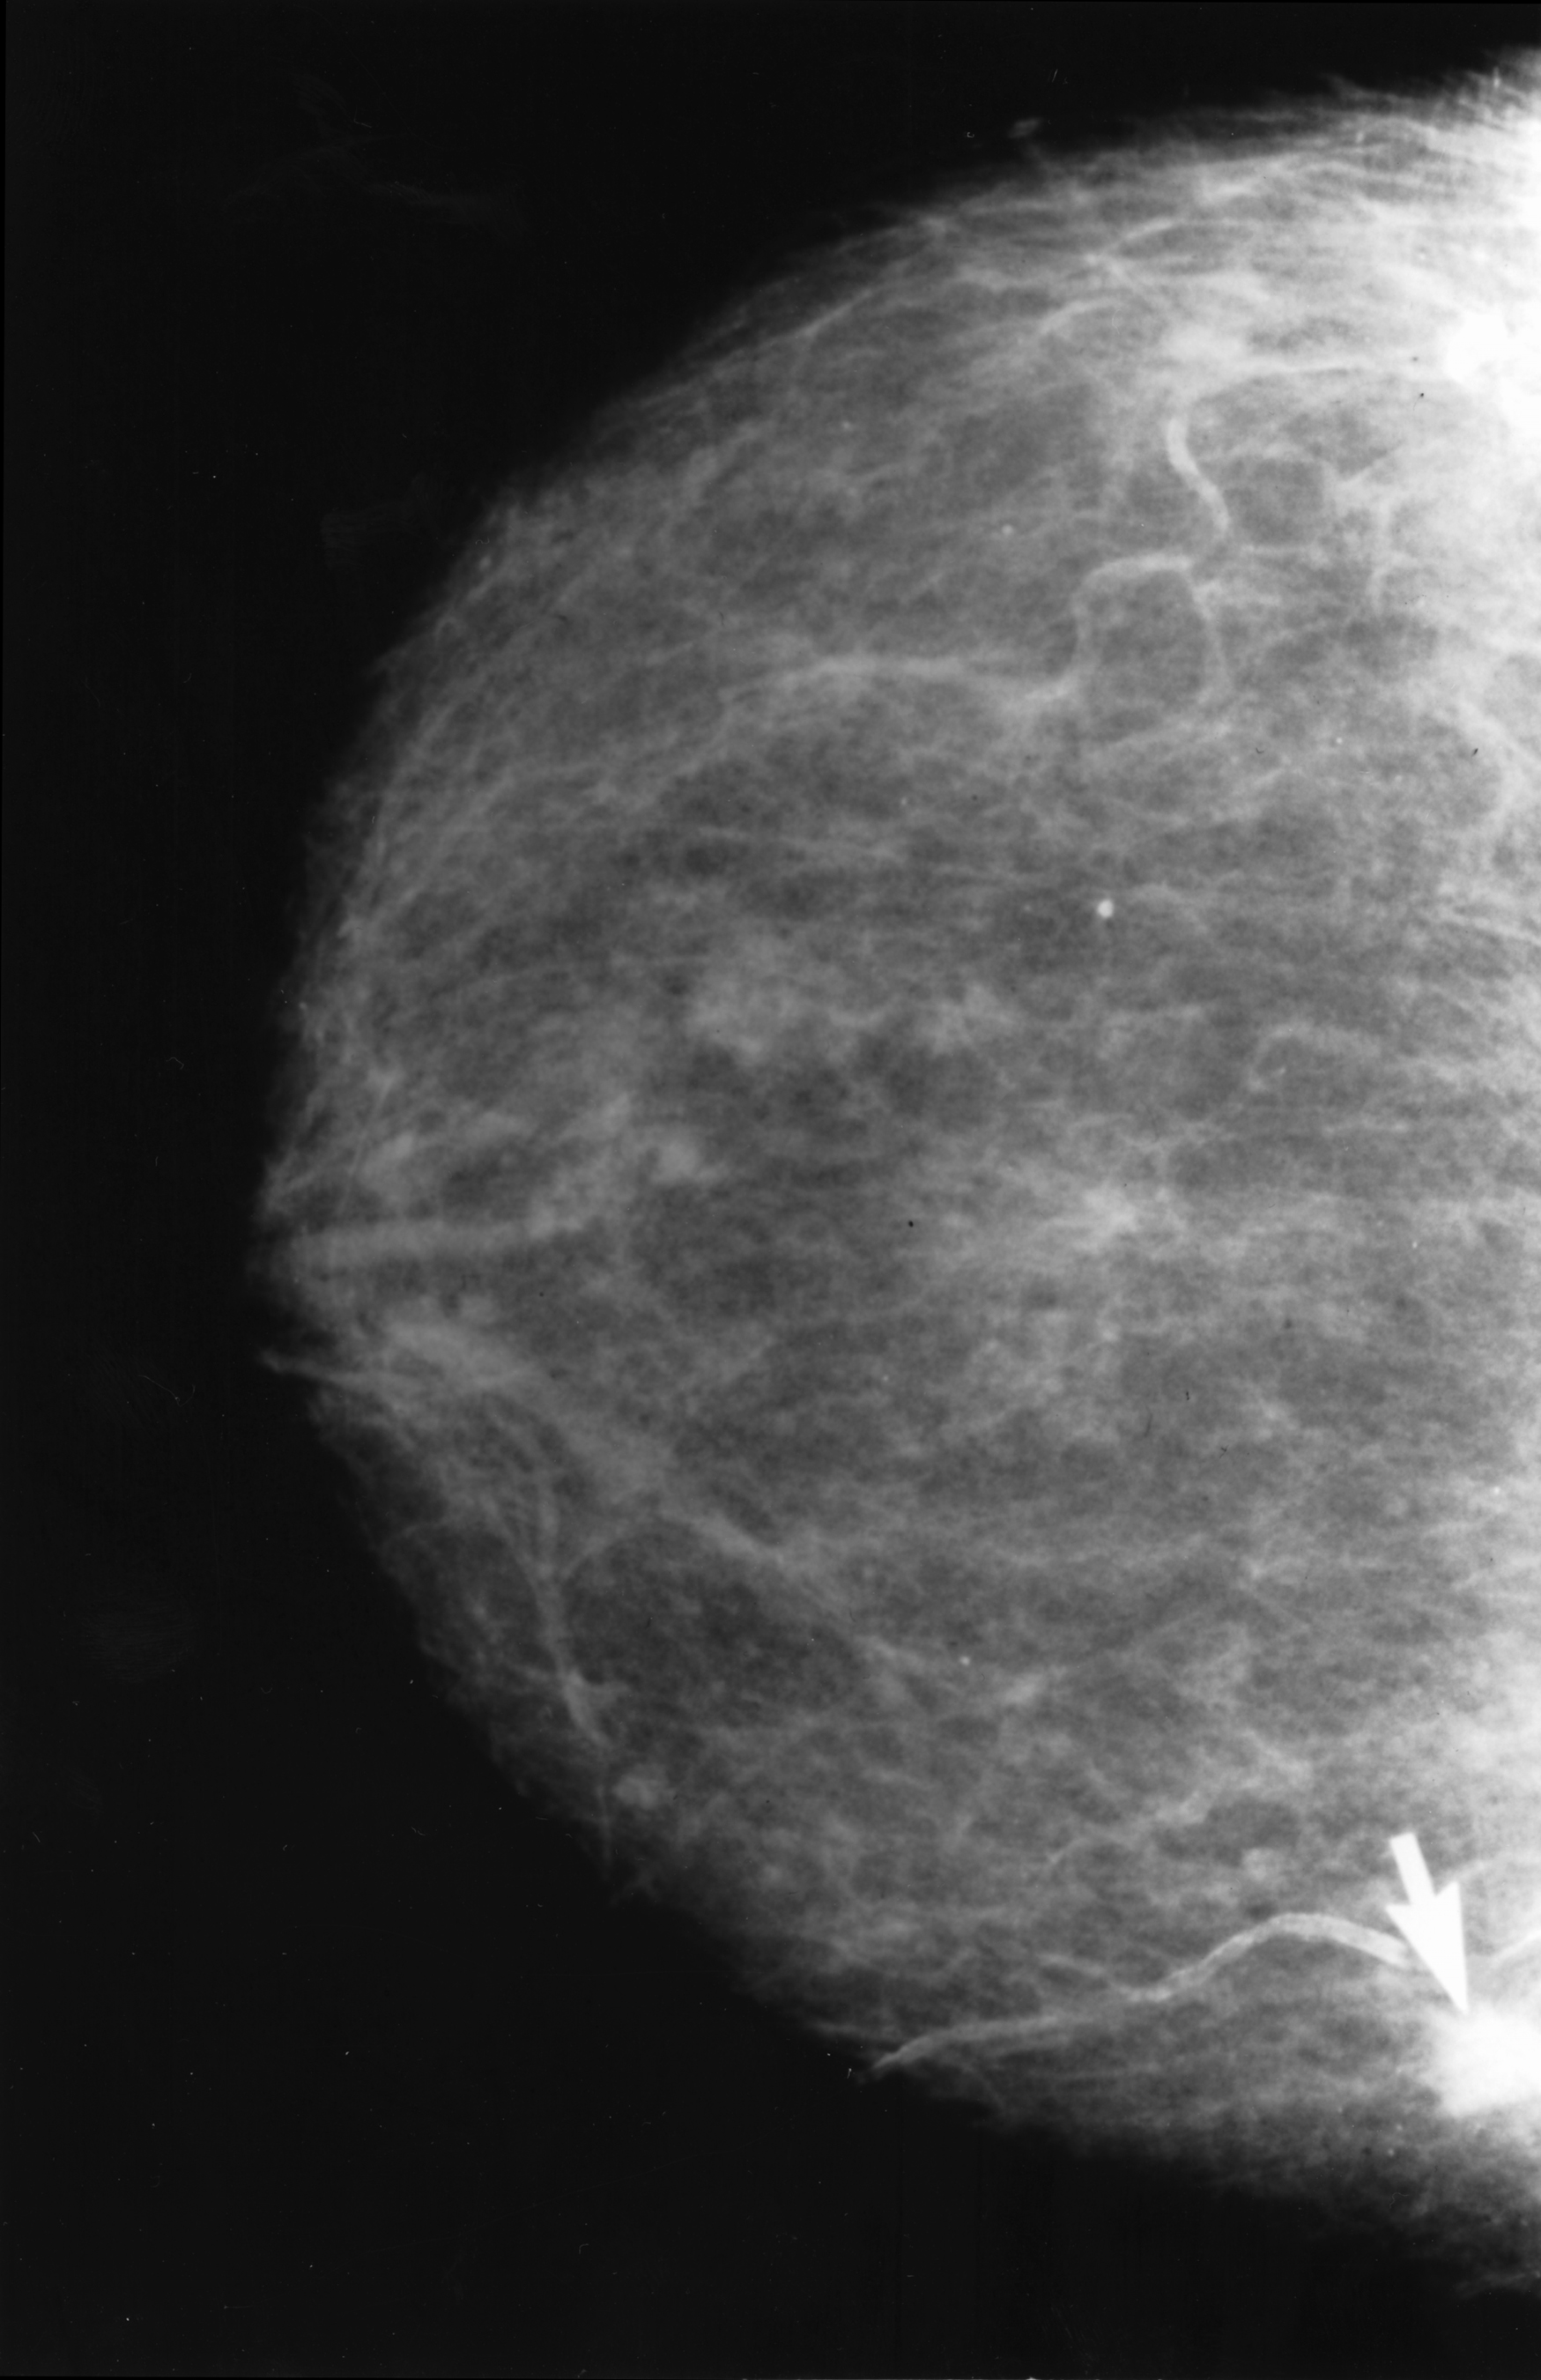 File:Mammogram with obvious cancer.jpg - Wikimedia Commons